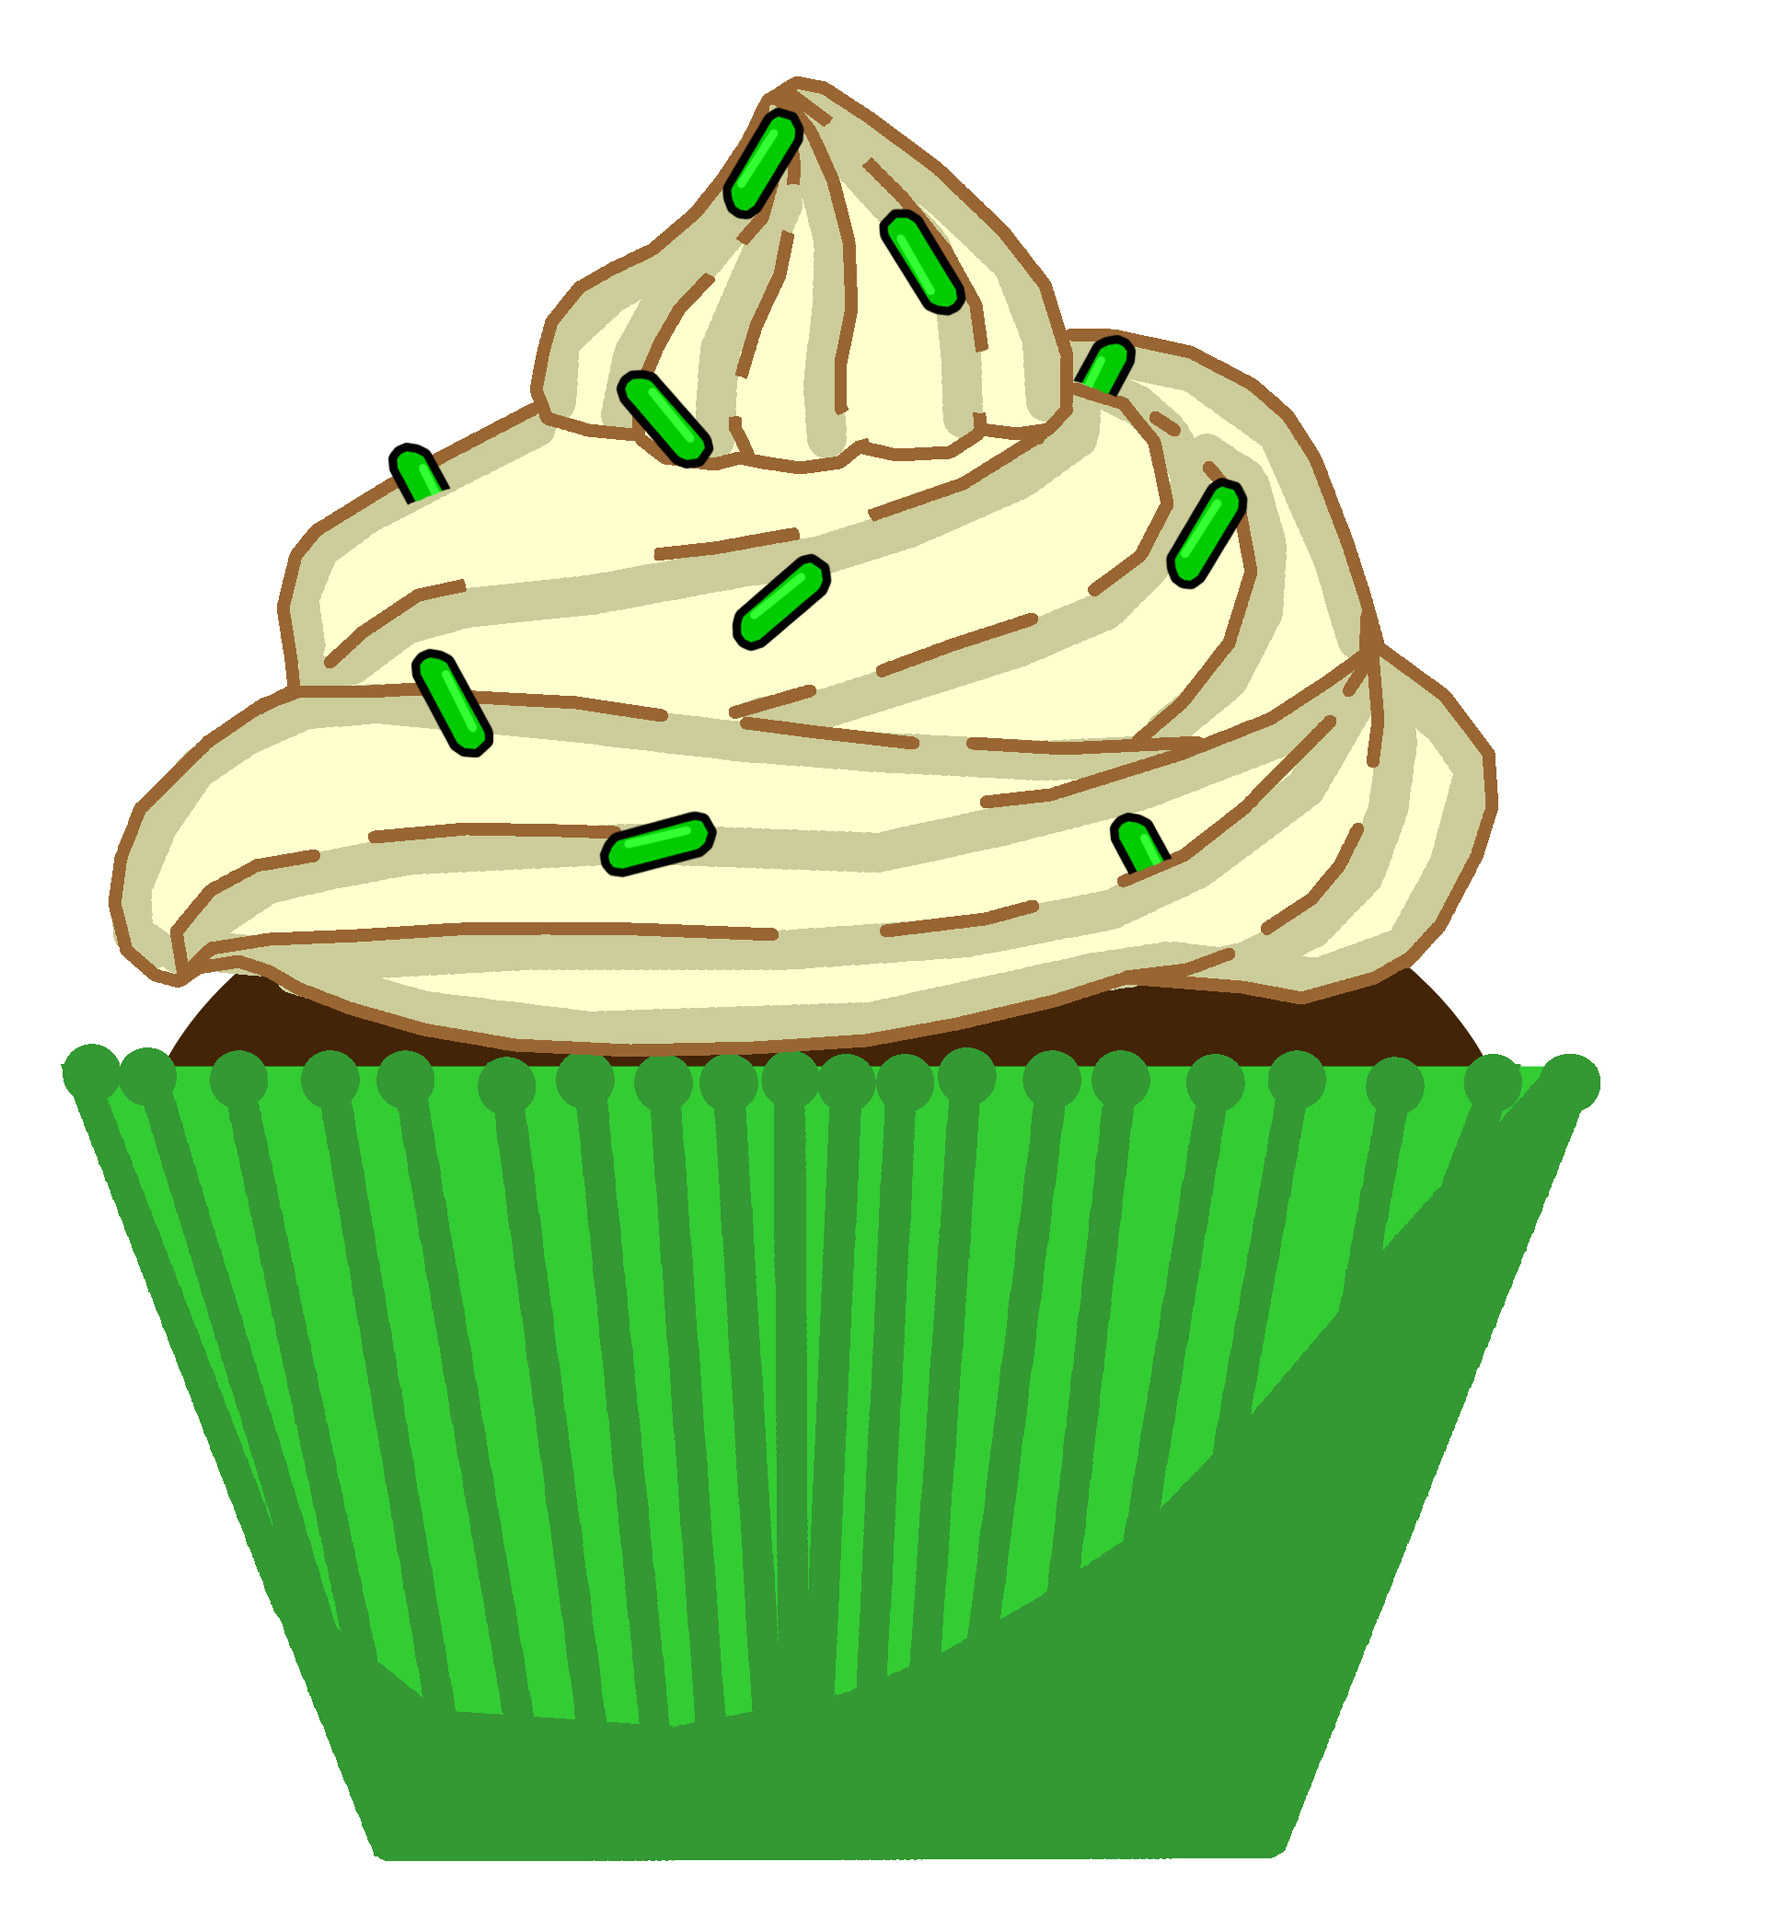 Muffin clipart green cupcake Cupcake Free Public Pictures Green